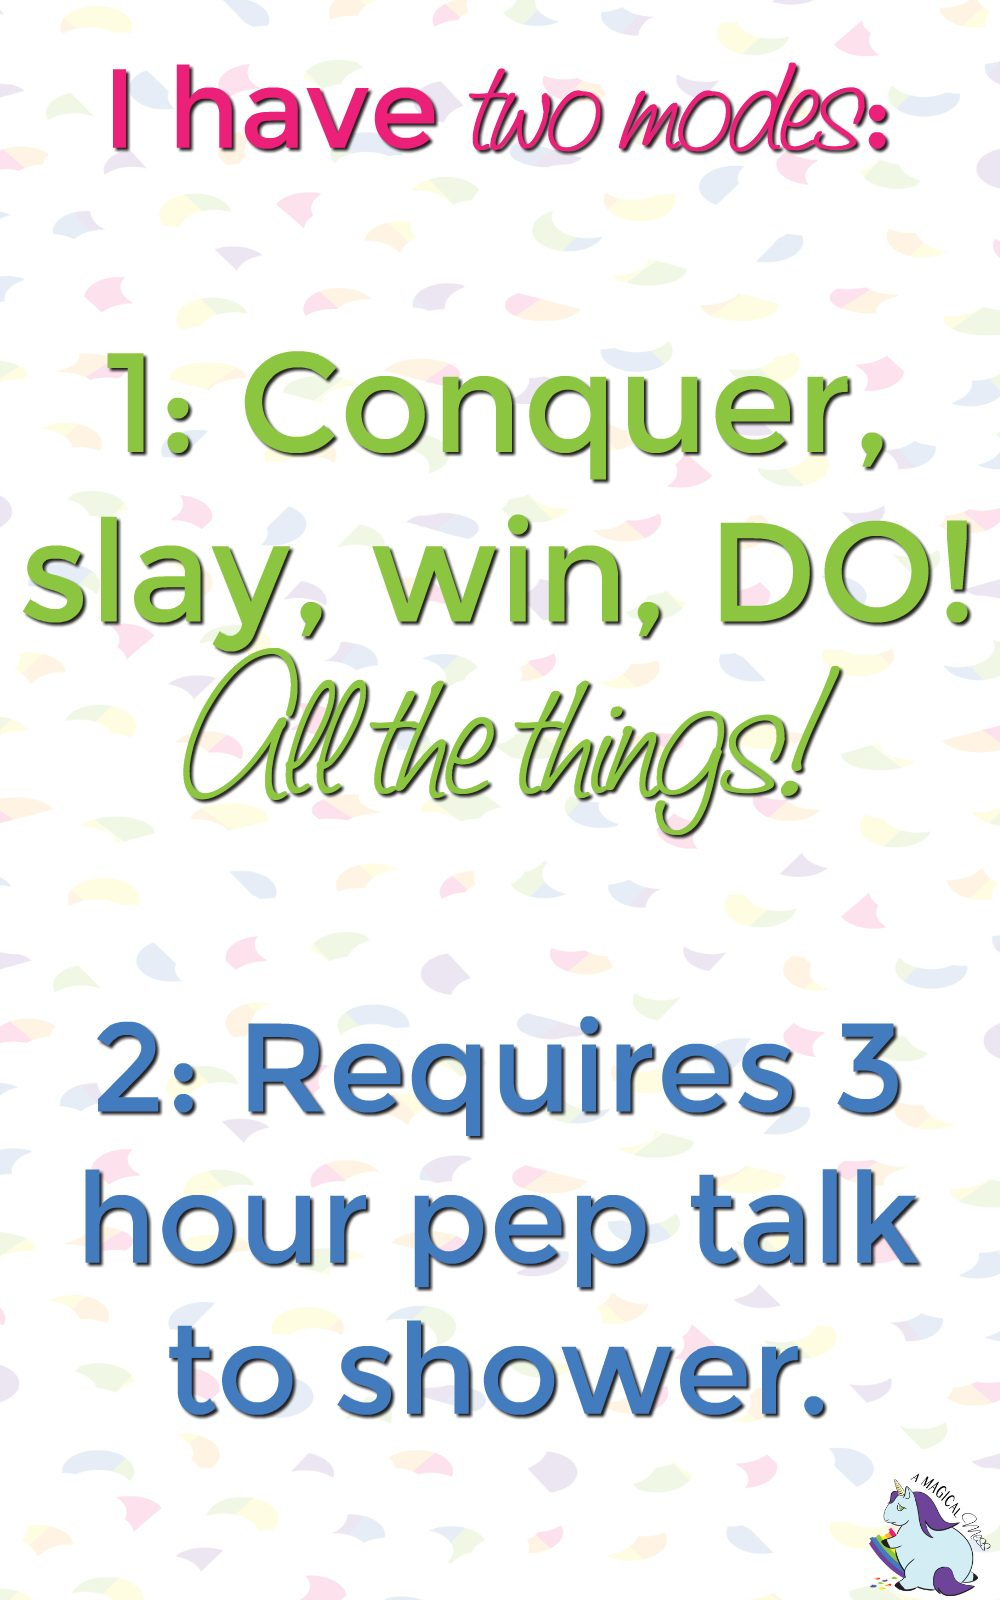 I have two modes - Conquer all the things! or Require 3 hour pep talk to shower